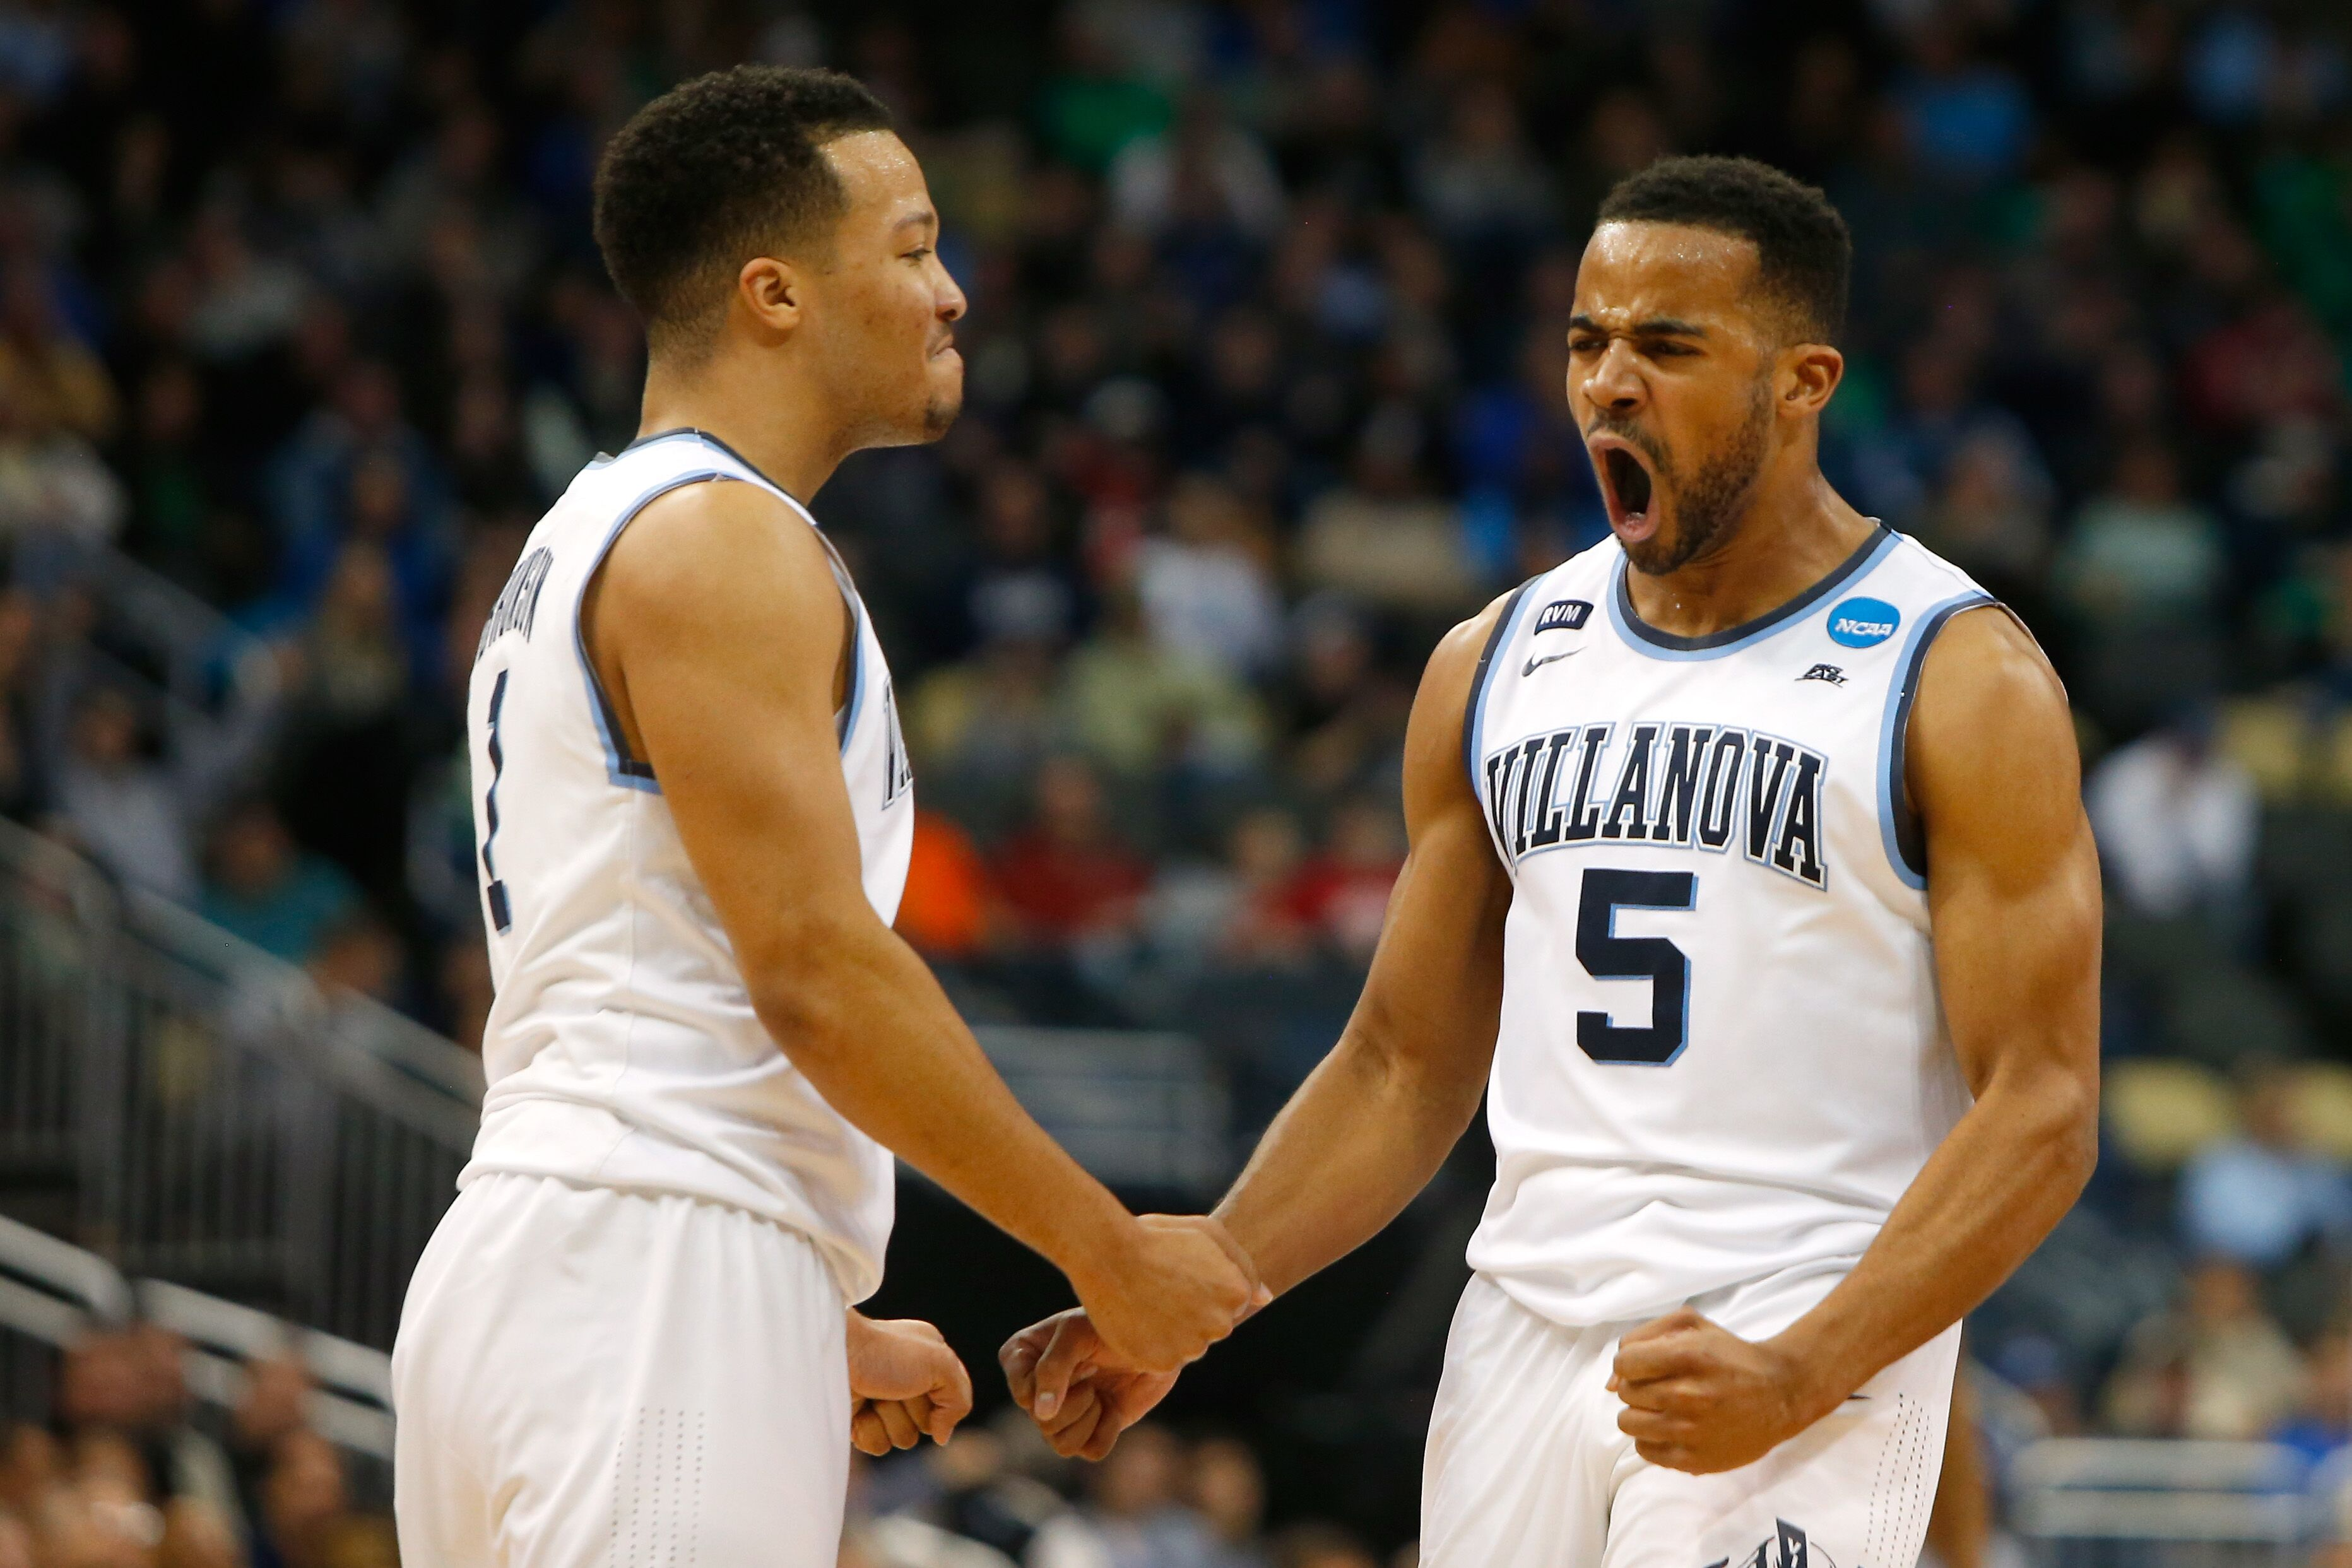 March Madness Picks Against The Spread 2018 Sweet 16: NCAA Tournament 2018: Sweet 16 TV Schedule